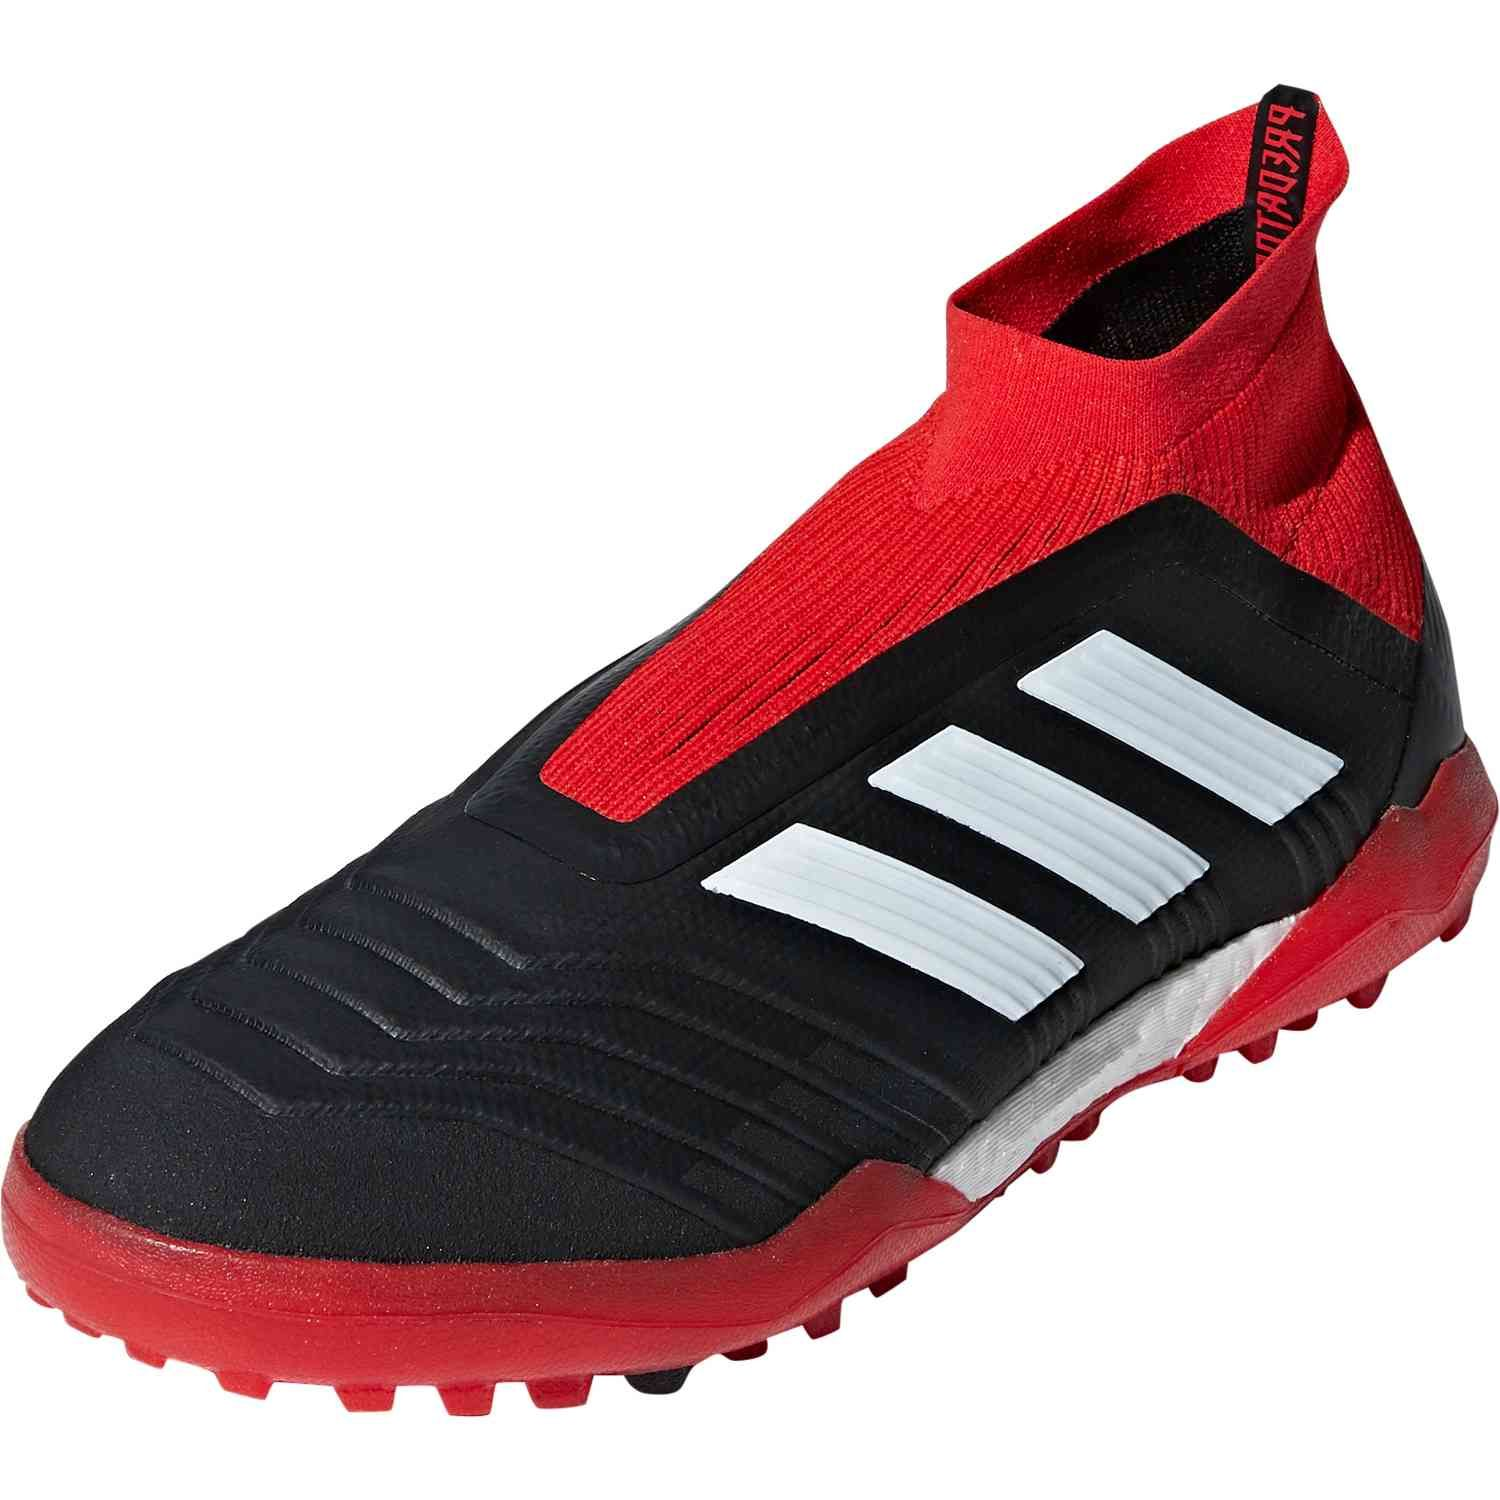 official photos 42dd6 a3a31 Team Mode pack! adidas Predator Tango 18+ turf soccer shoes. Get them from  www.soccerpro.com